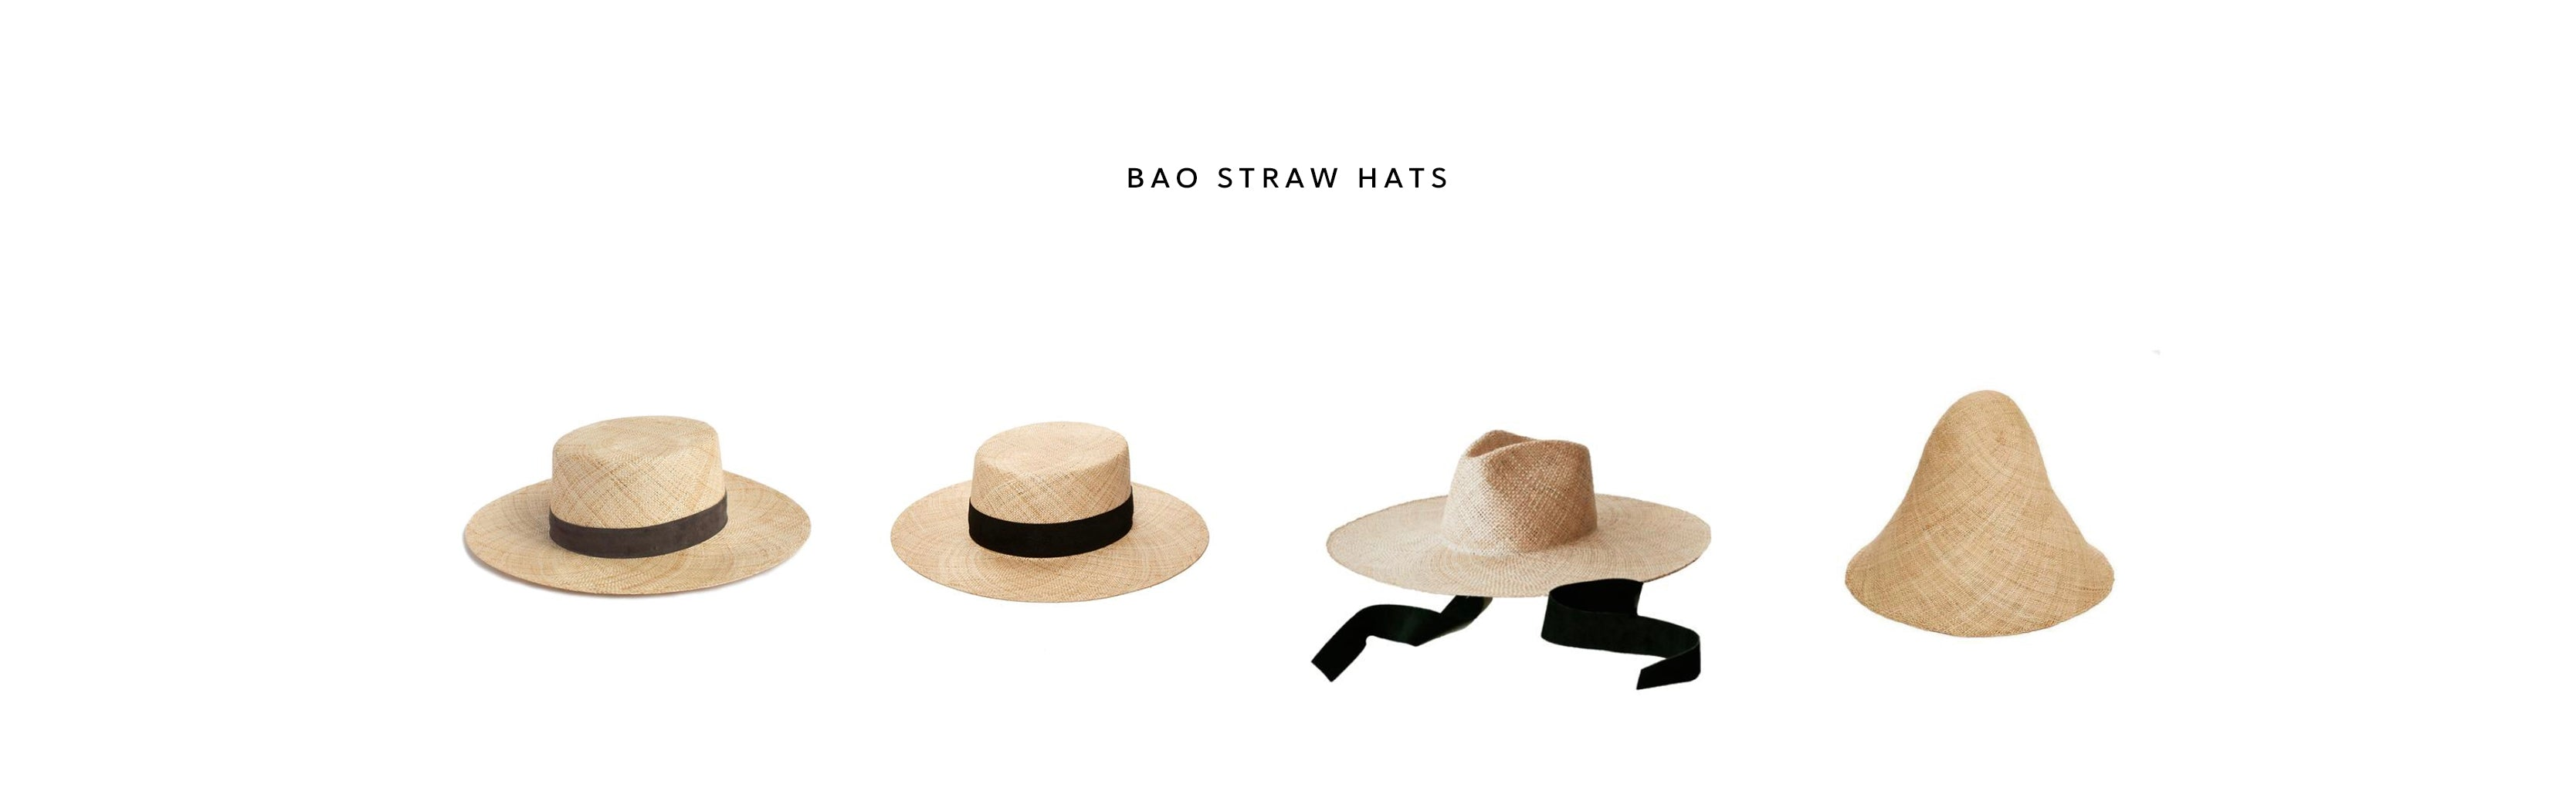 bao straw hats by janessa leone hats that are sustainable natural